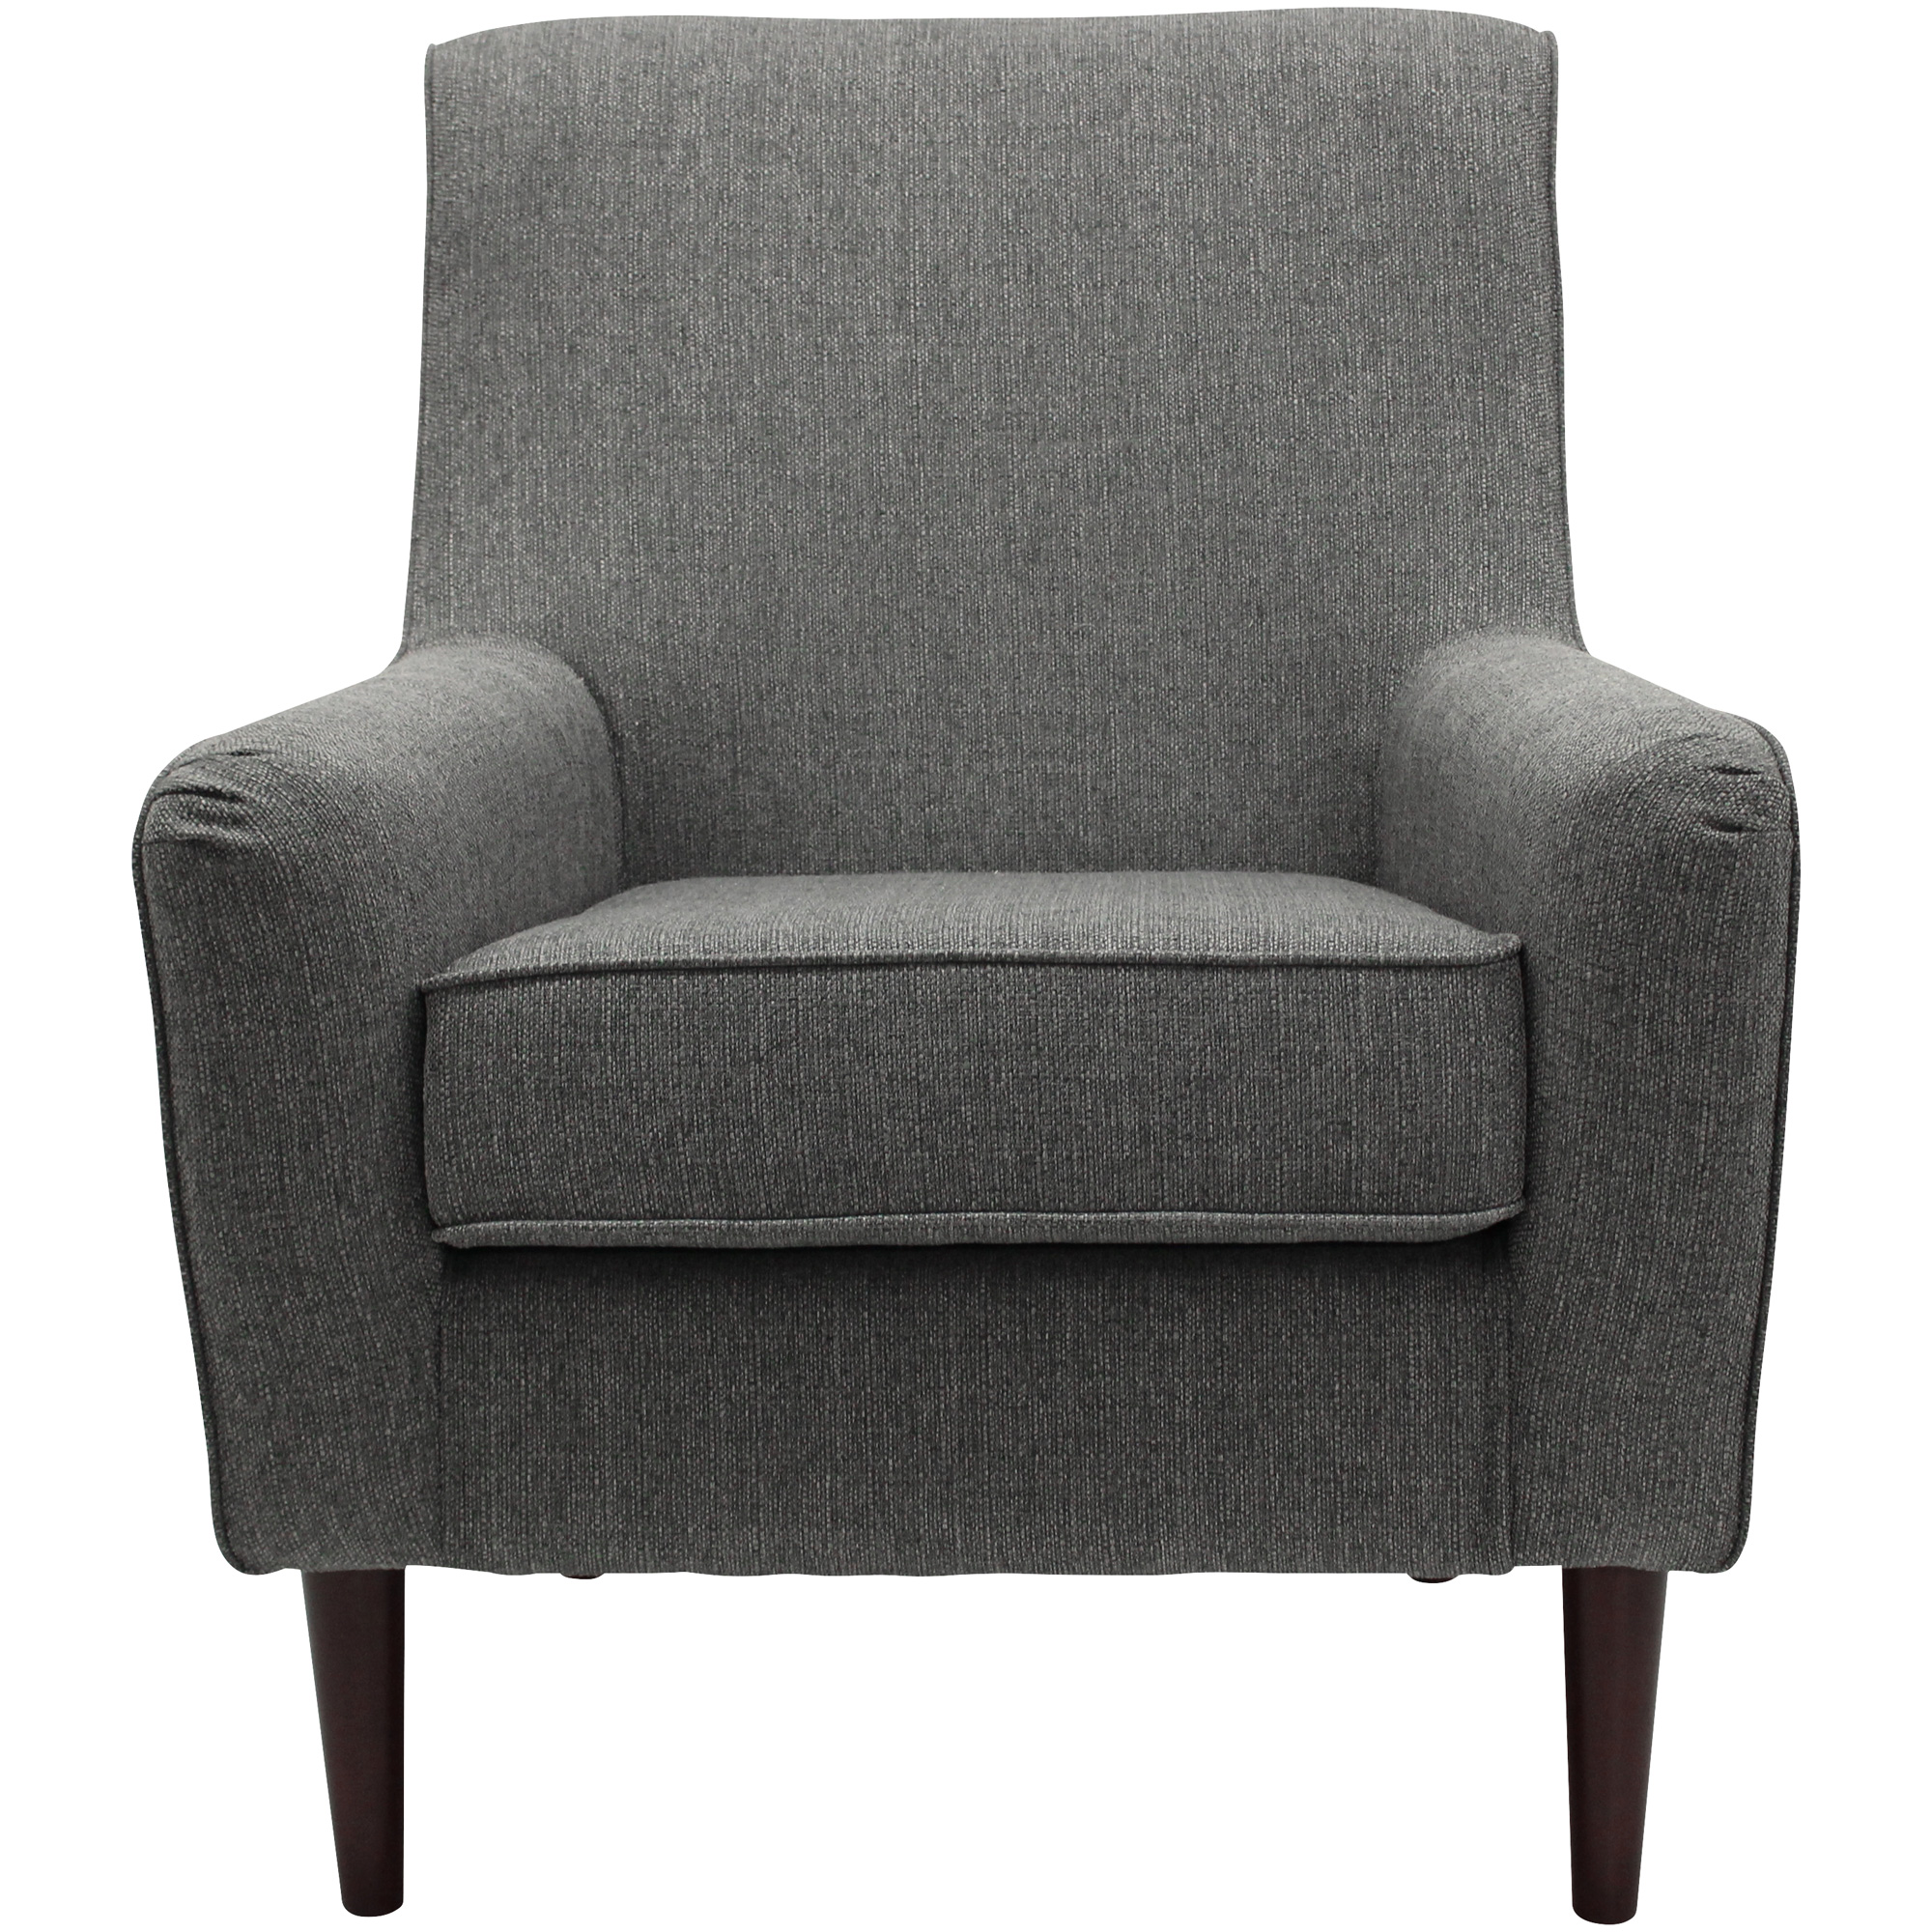 Overman | Laura Gray Accent Chair